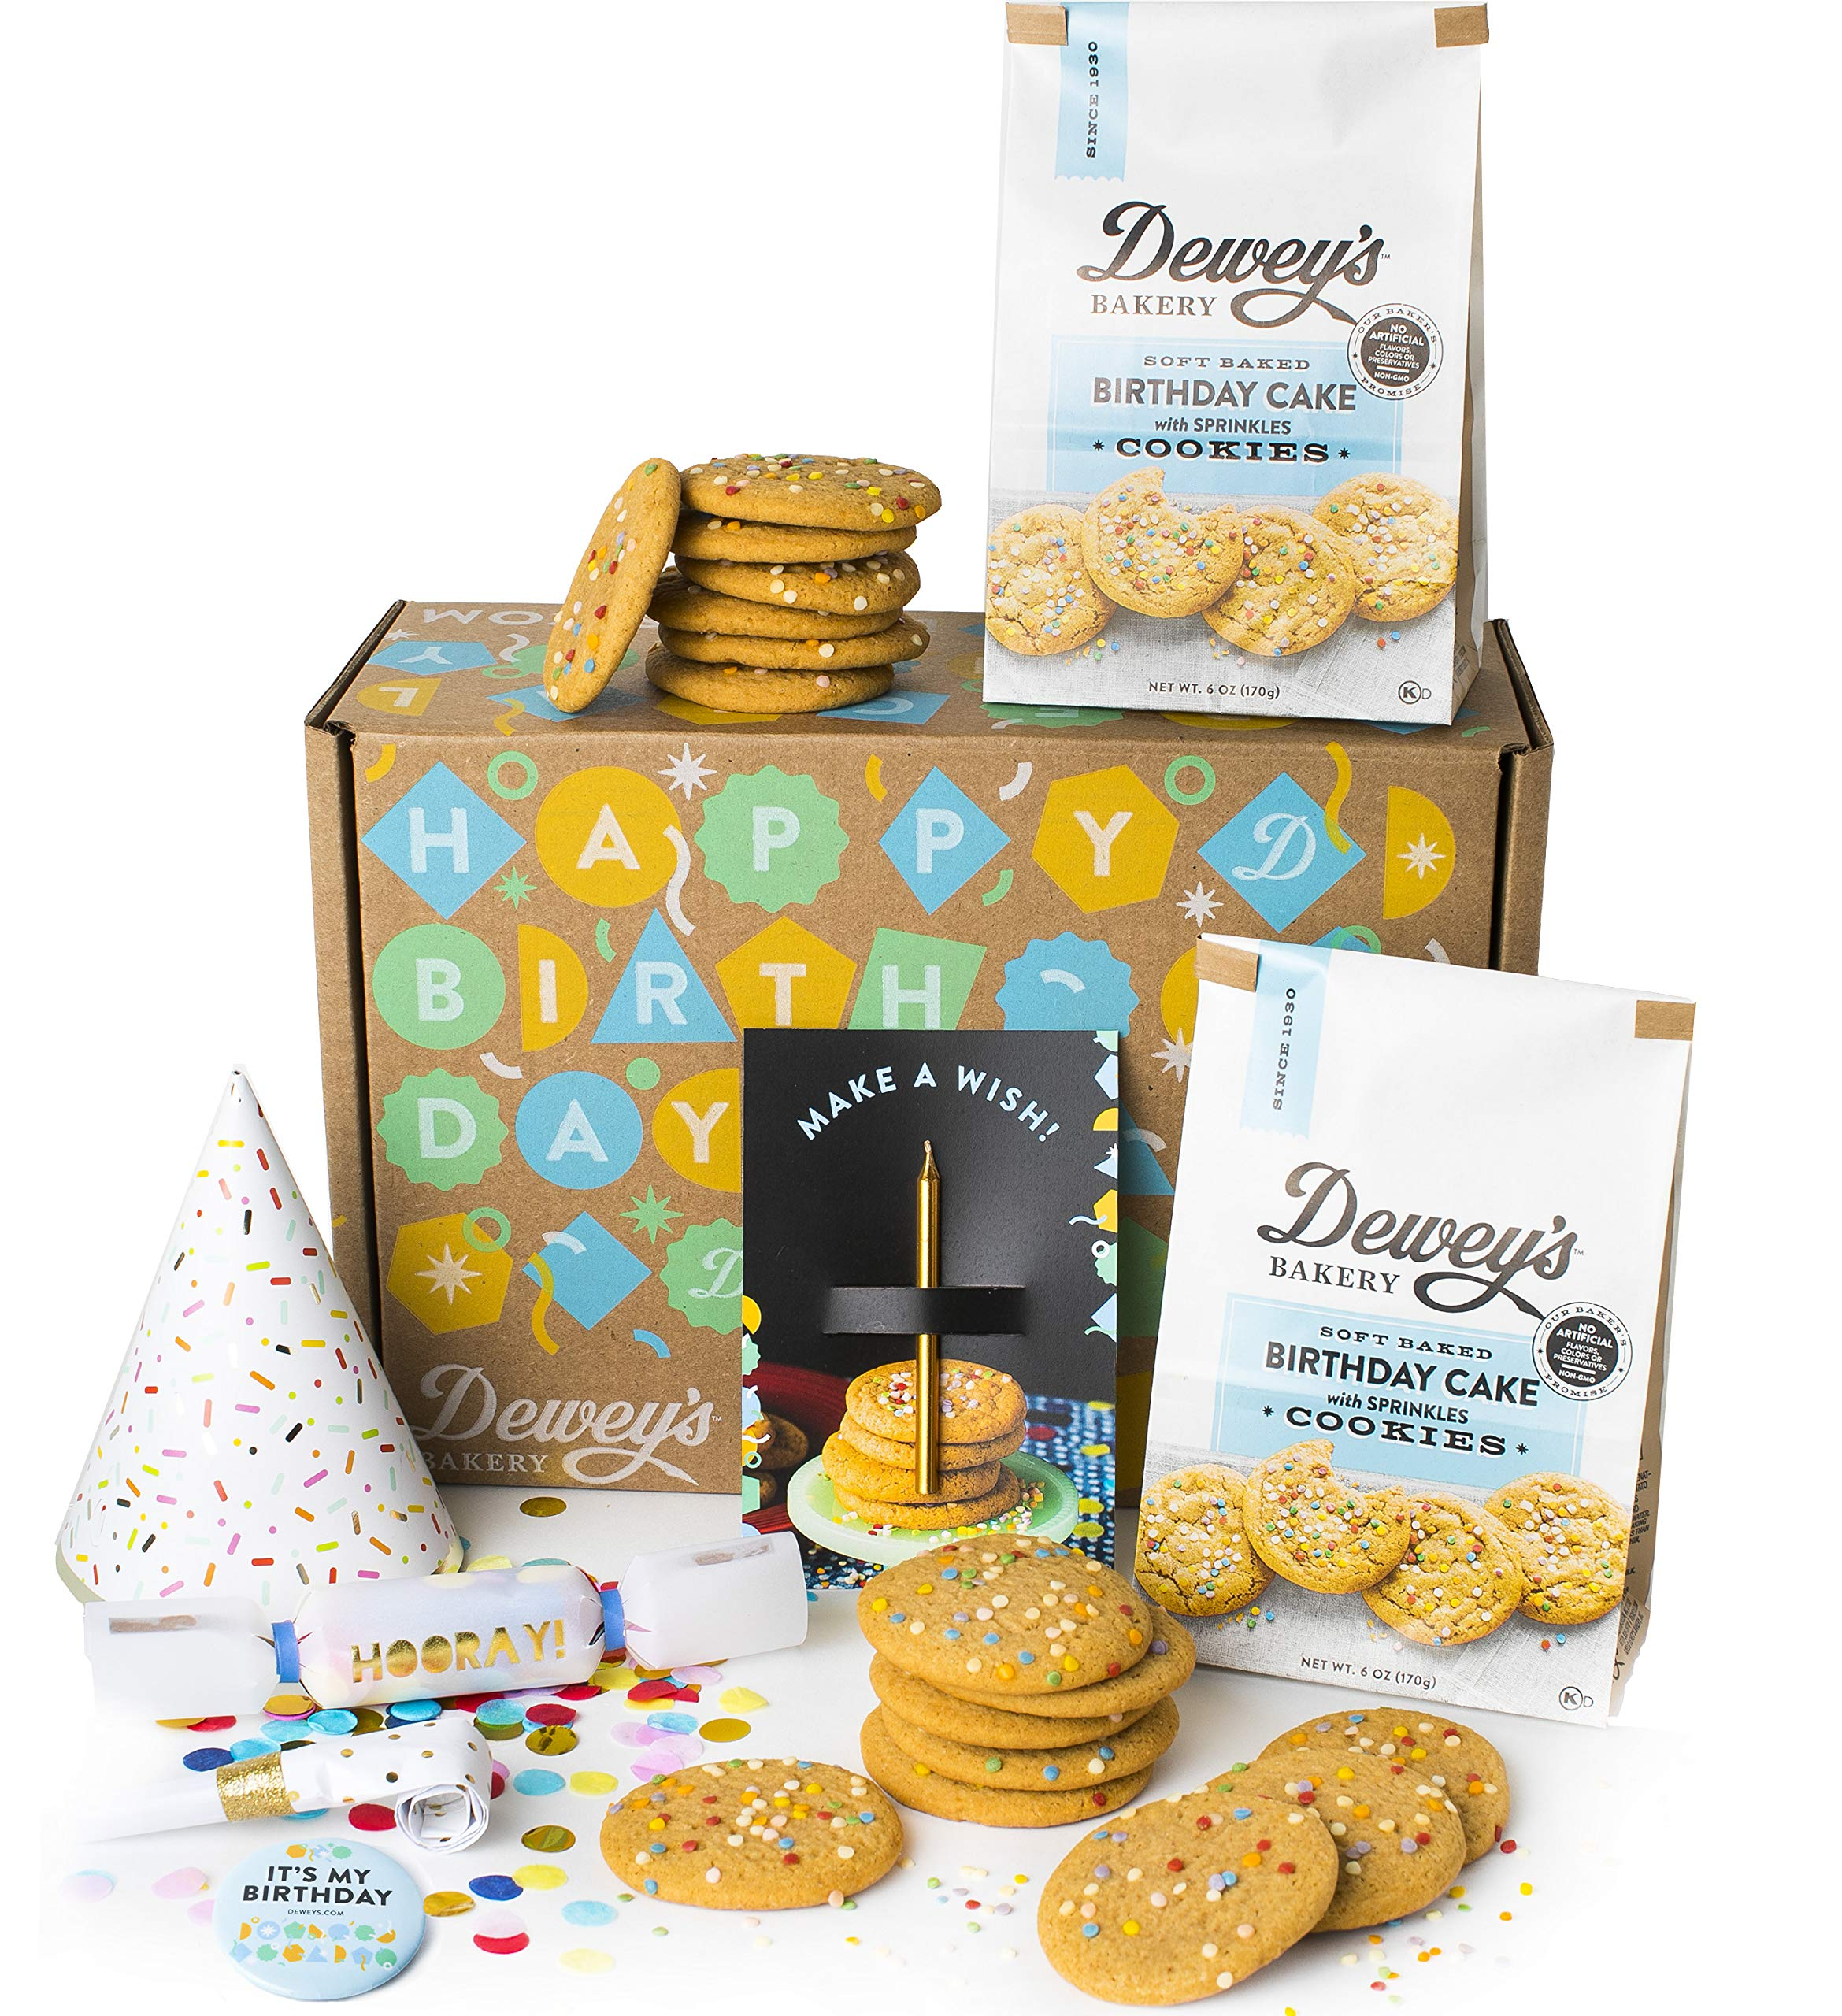 Dewey's Bakery Birthday Party in a Box | Birthday Cake with Sprinkles Soft Baked Cookies | Baked in Small Batches |Simple Ingredients | Southern Bakery Recipe | 6 oz (Pack of 2) with Party Supplies